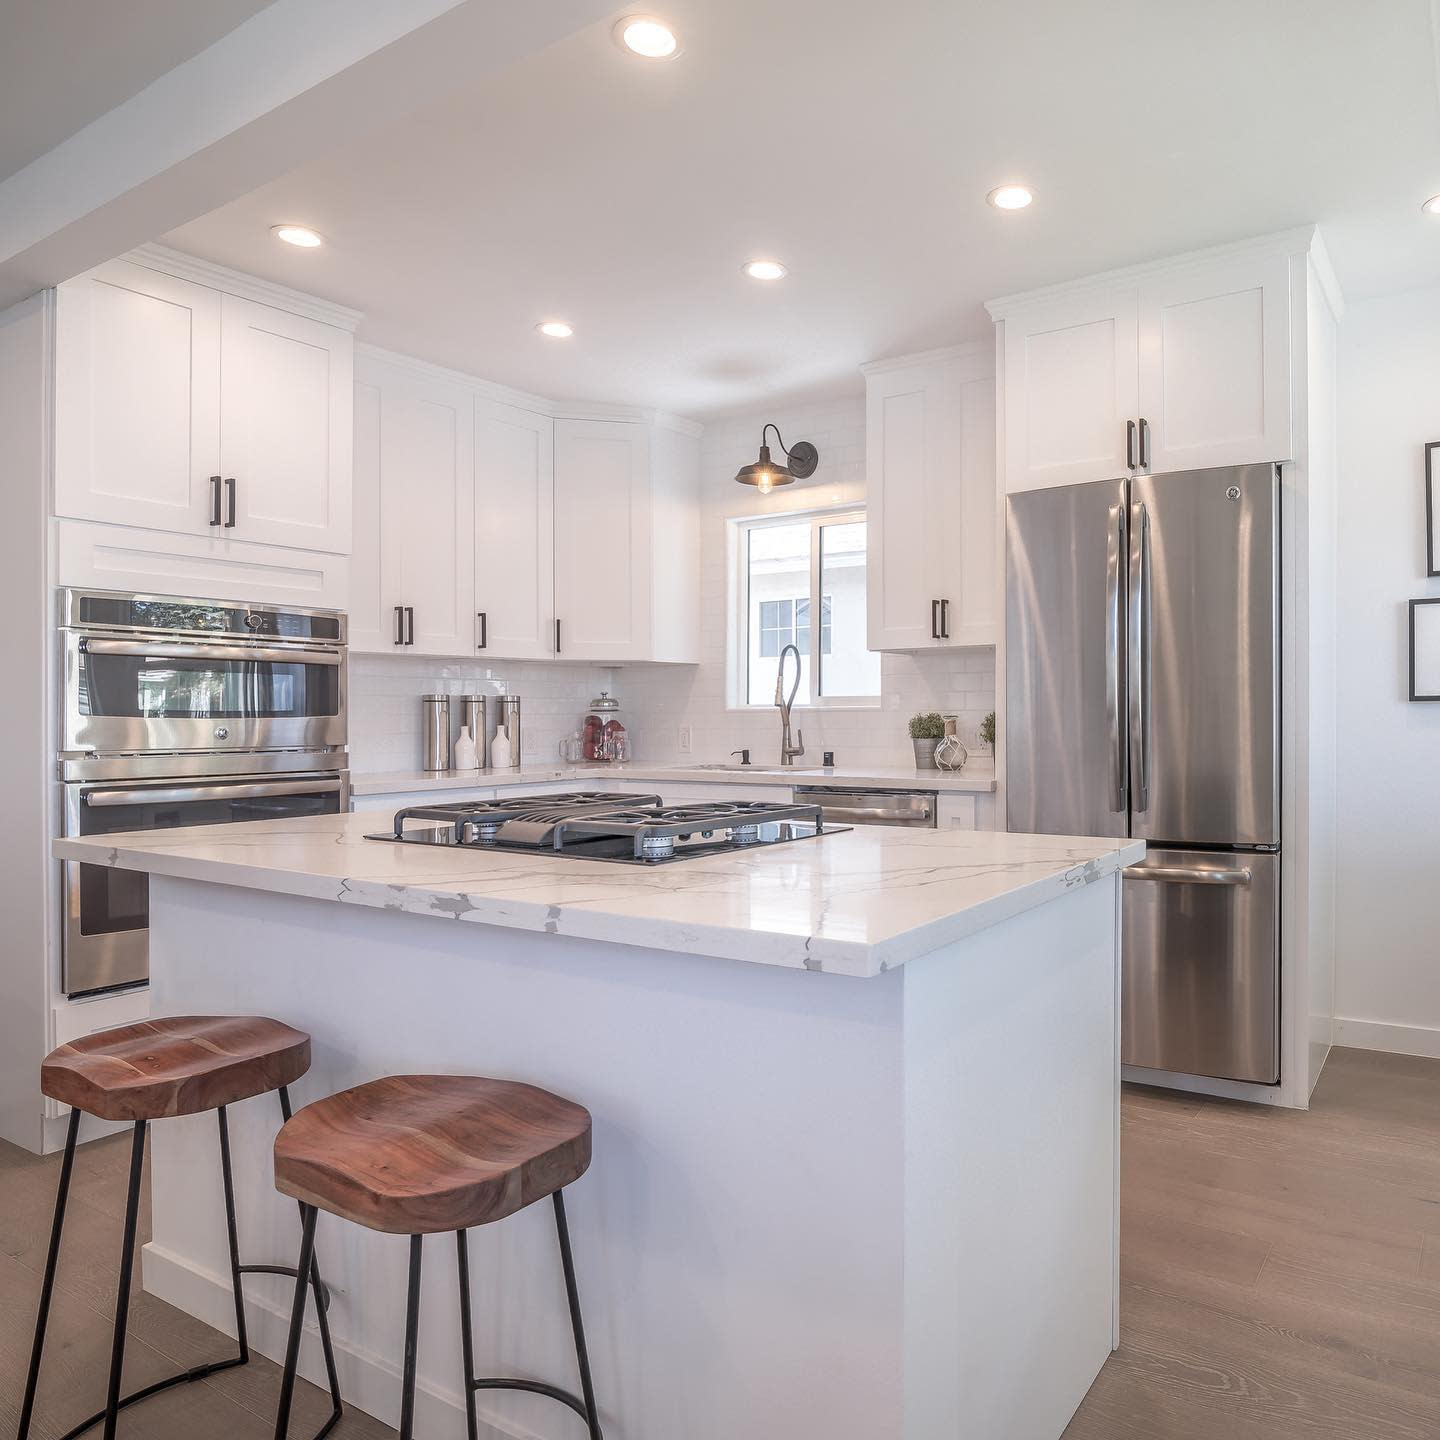 Lighting Kitchen Ceiling Ideas -andychoiofficial